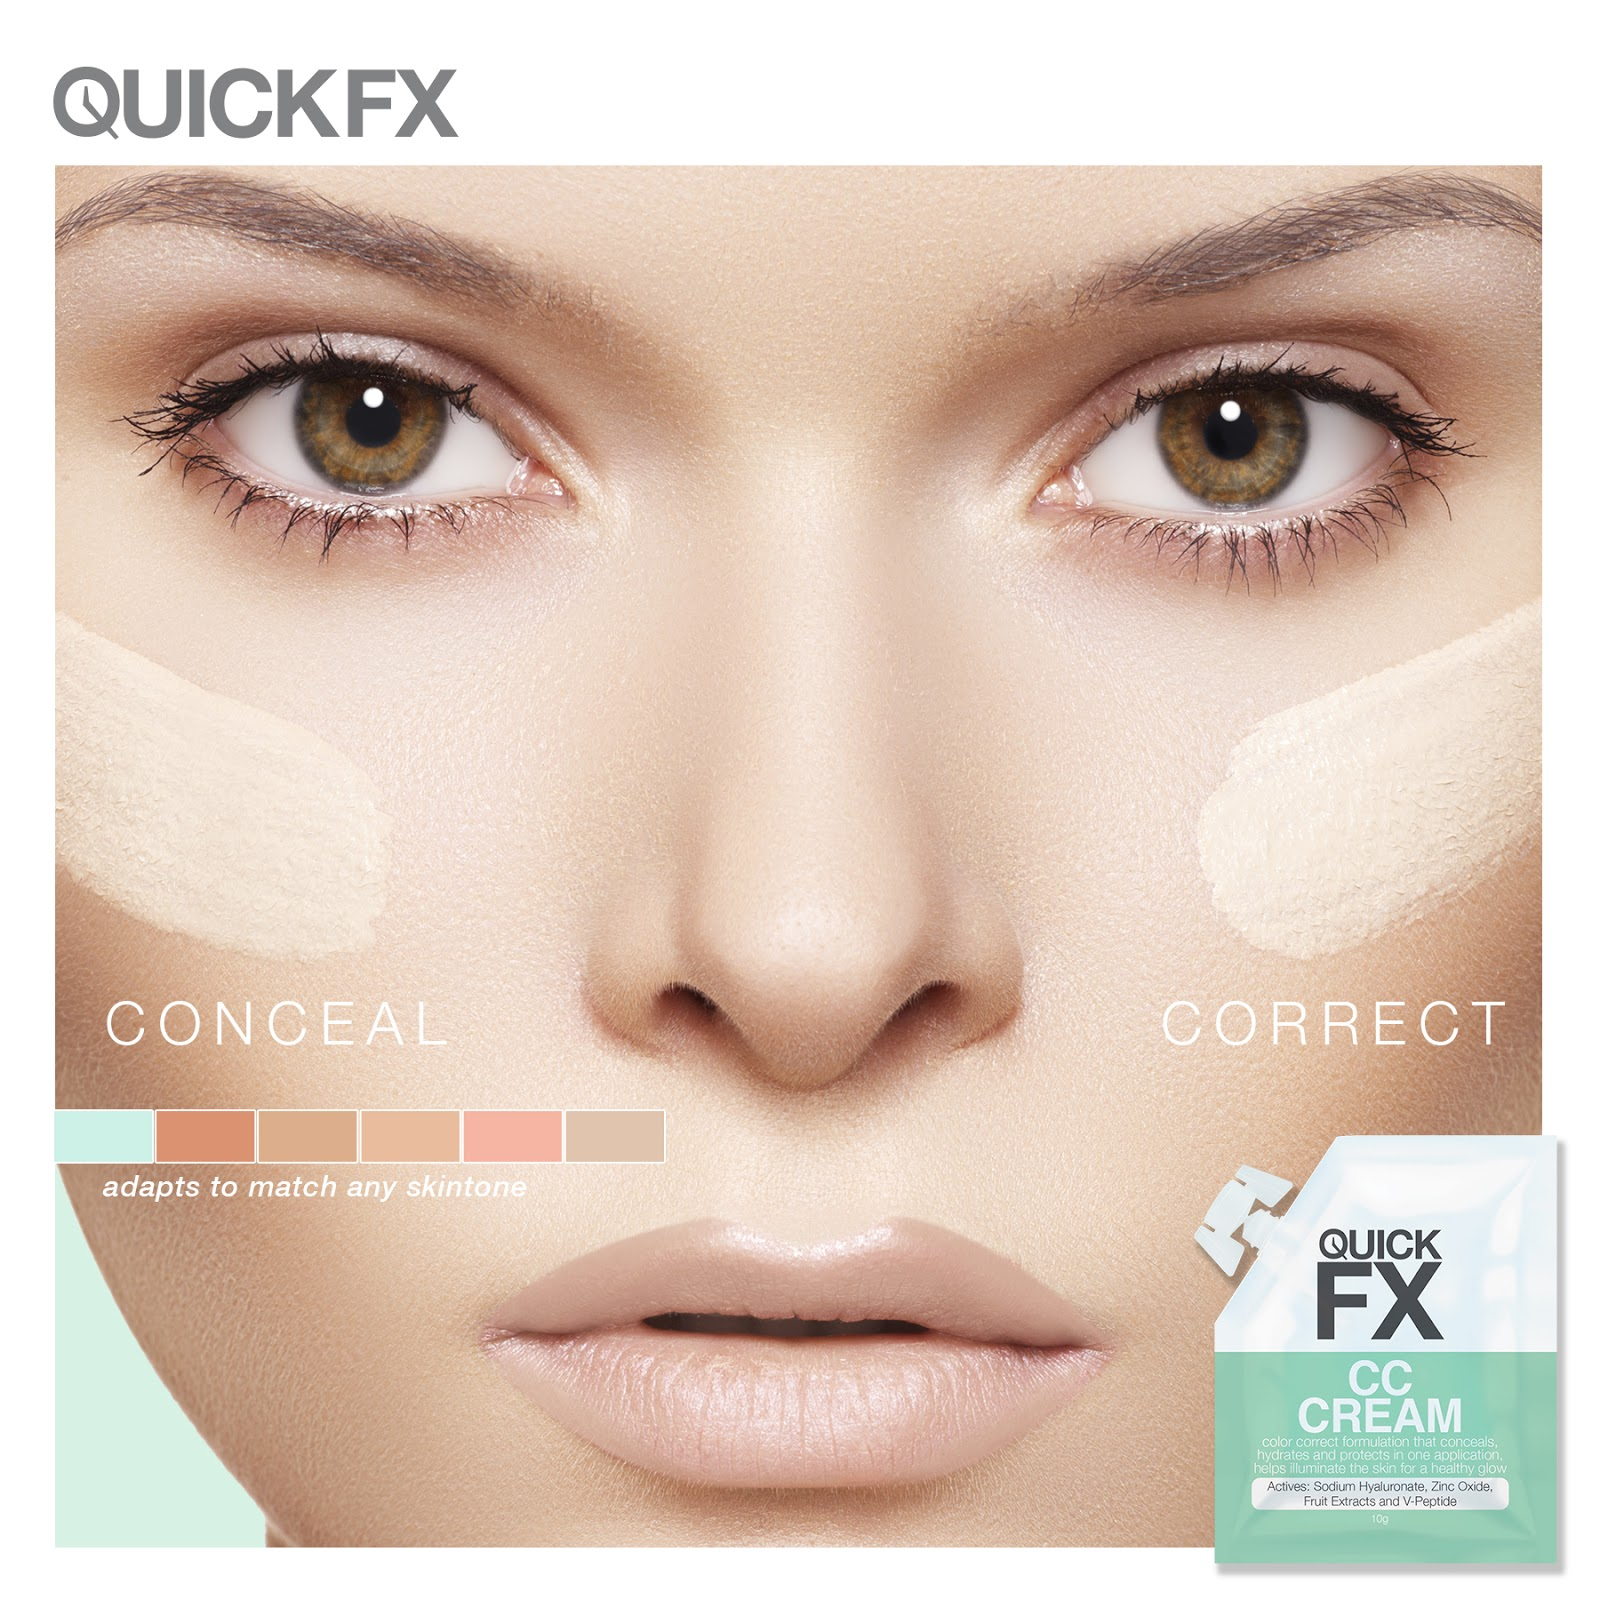 Lipsticks and Moe: Conceal and Correct with Quick FX CC Cream